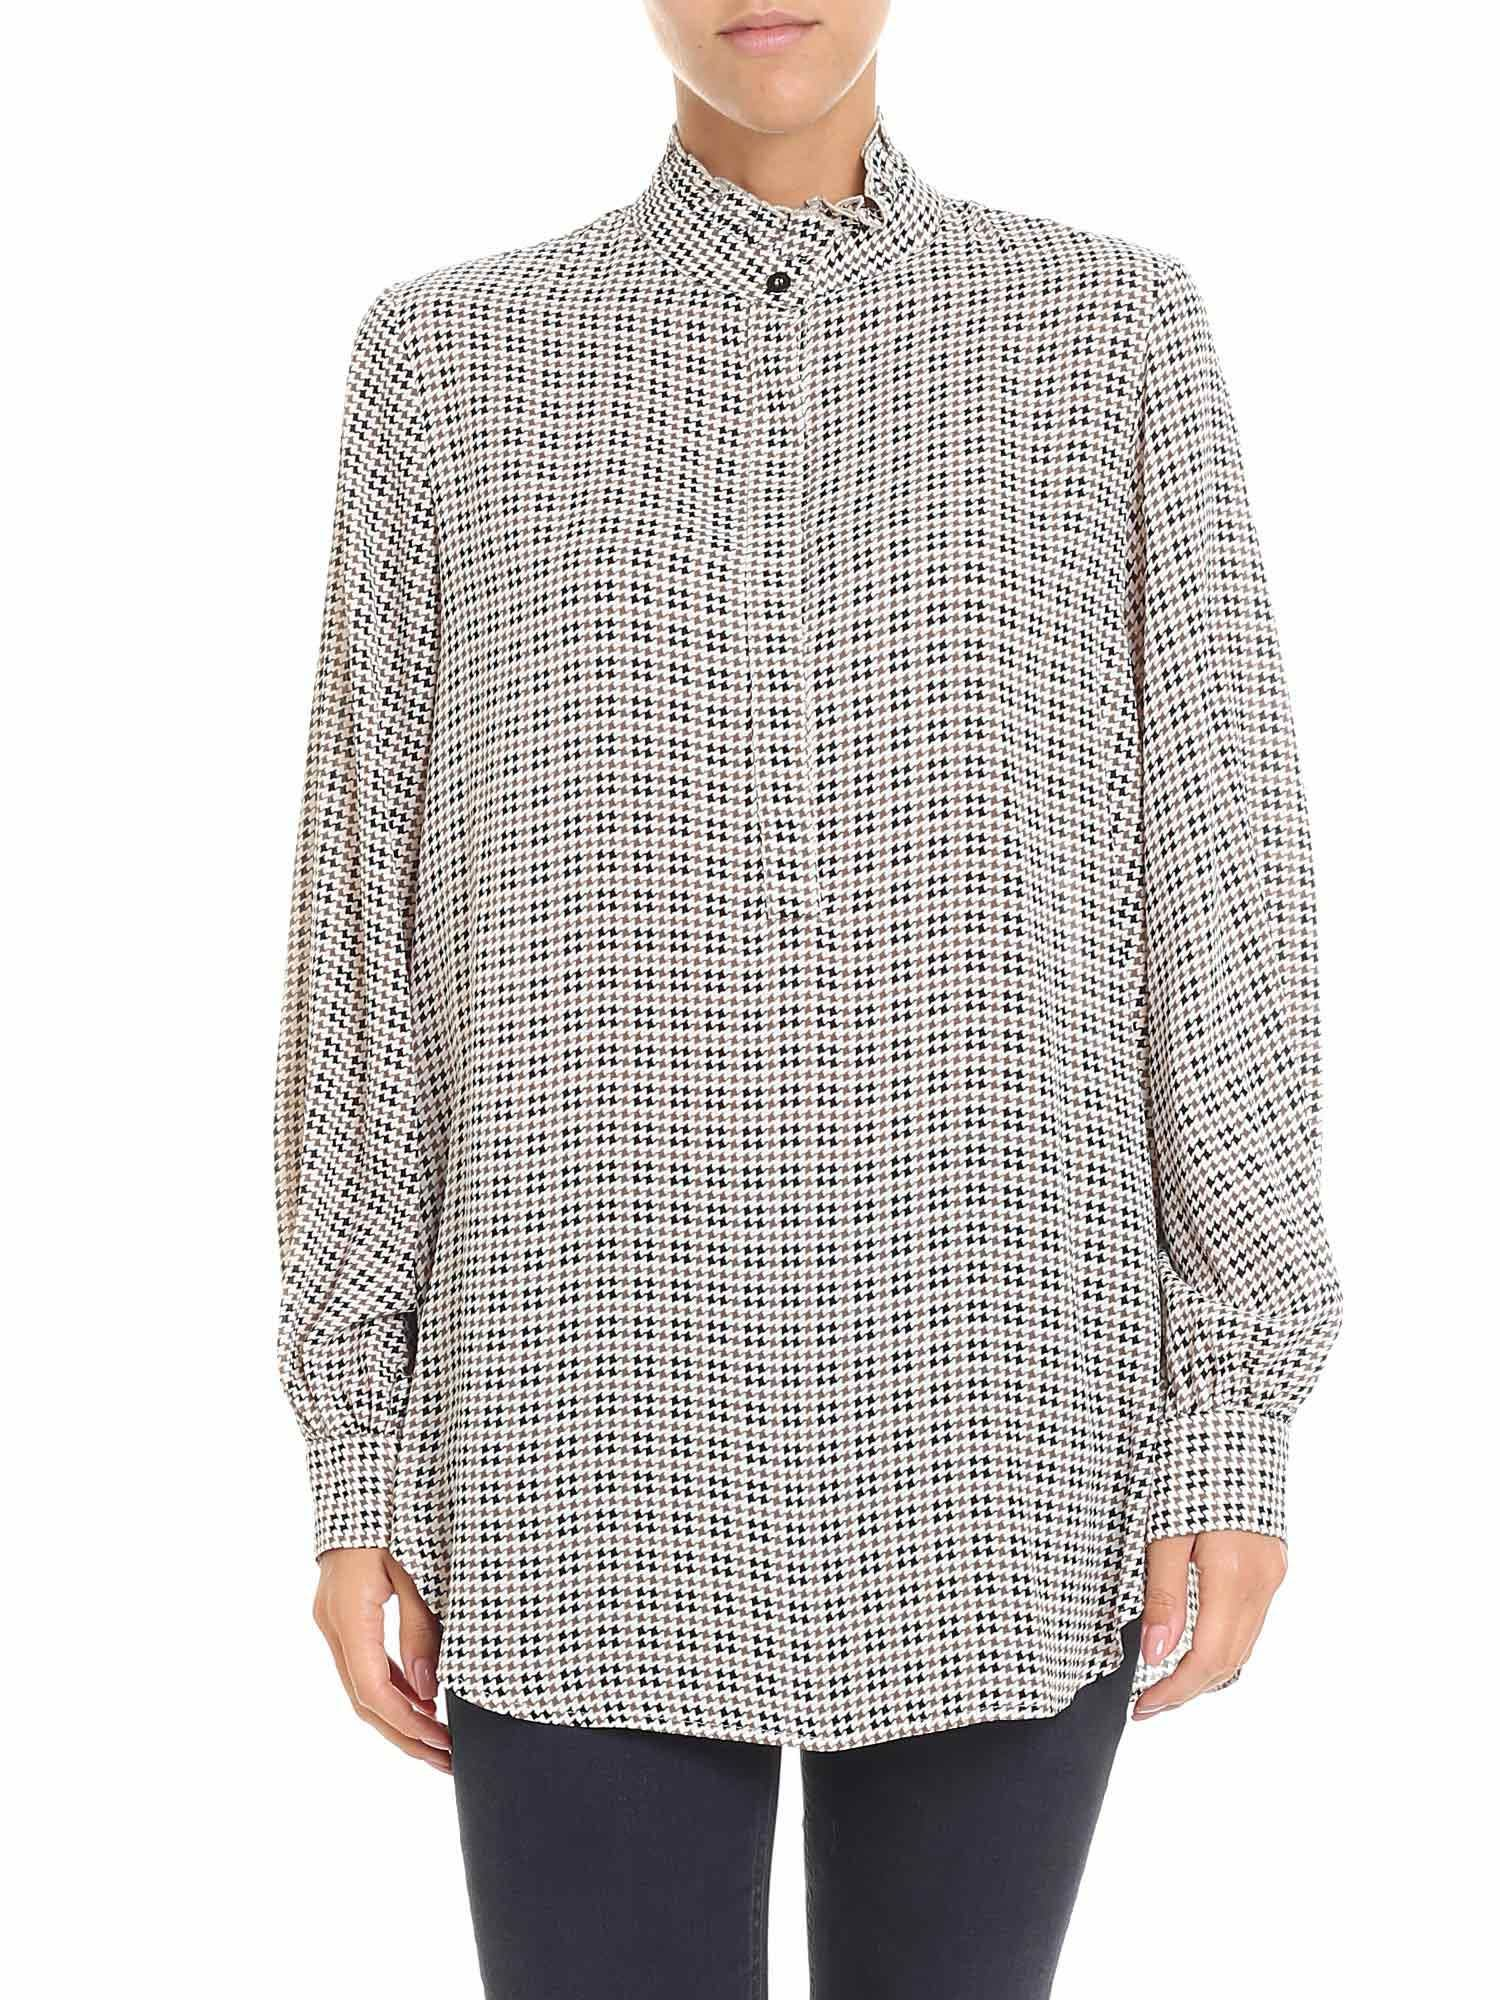 ALTEA Patterned Shirt in Multicolor